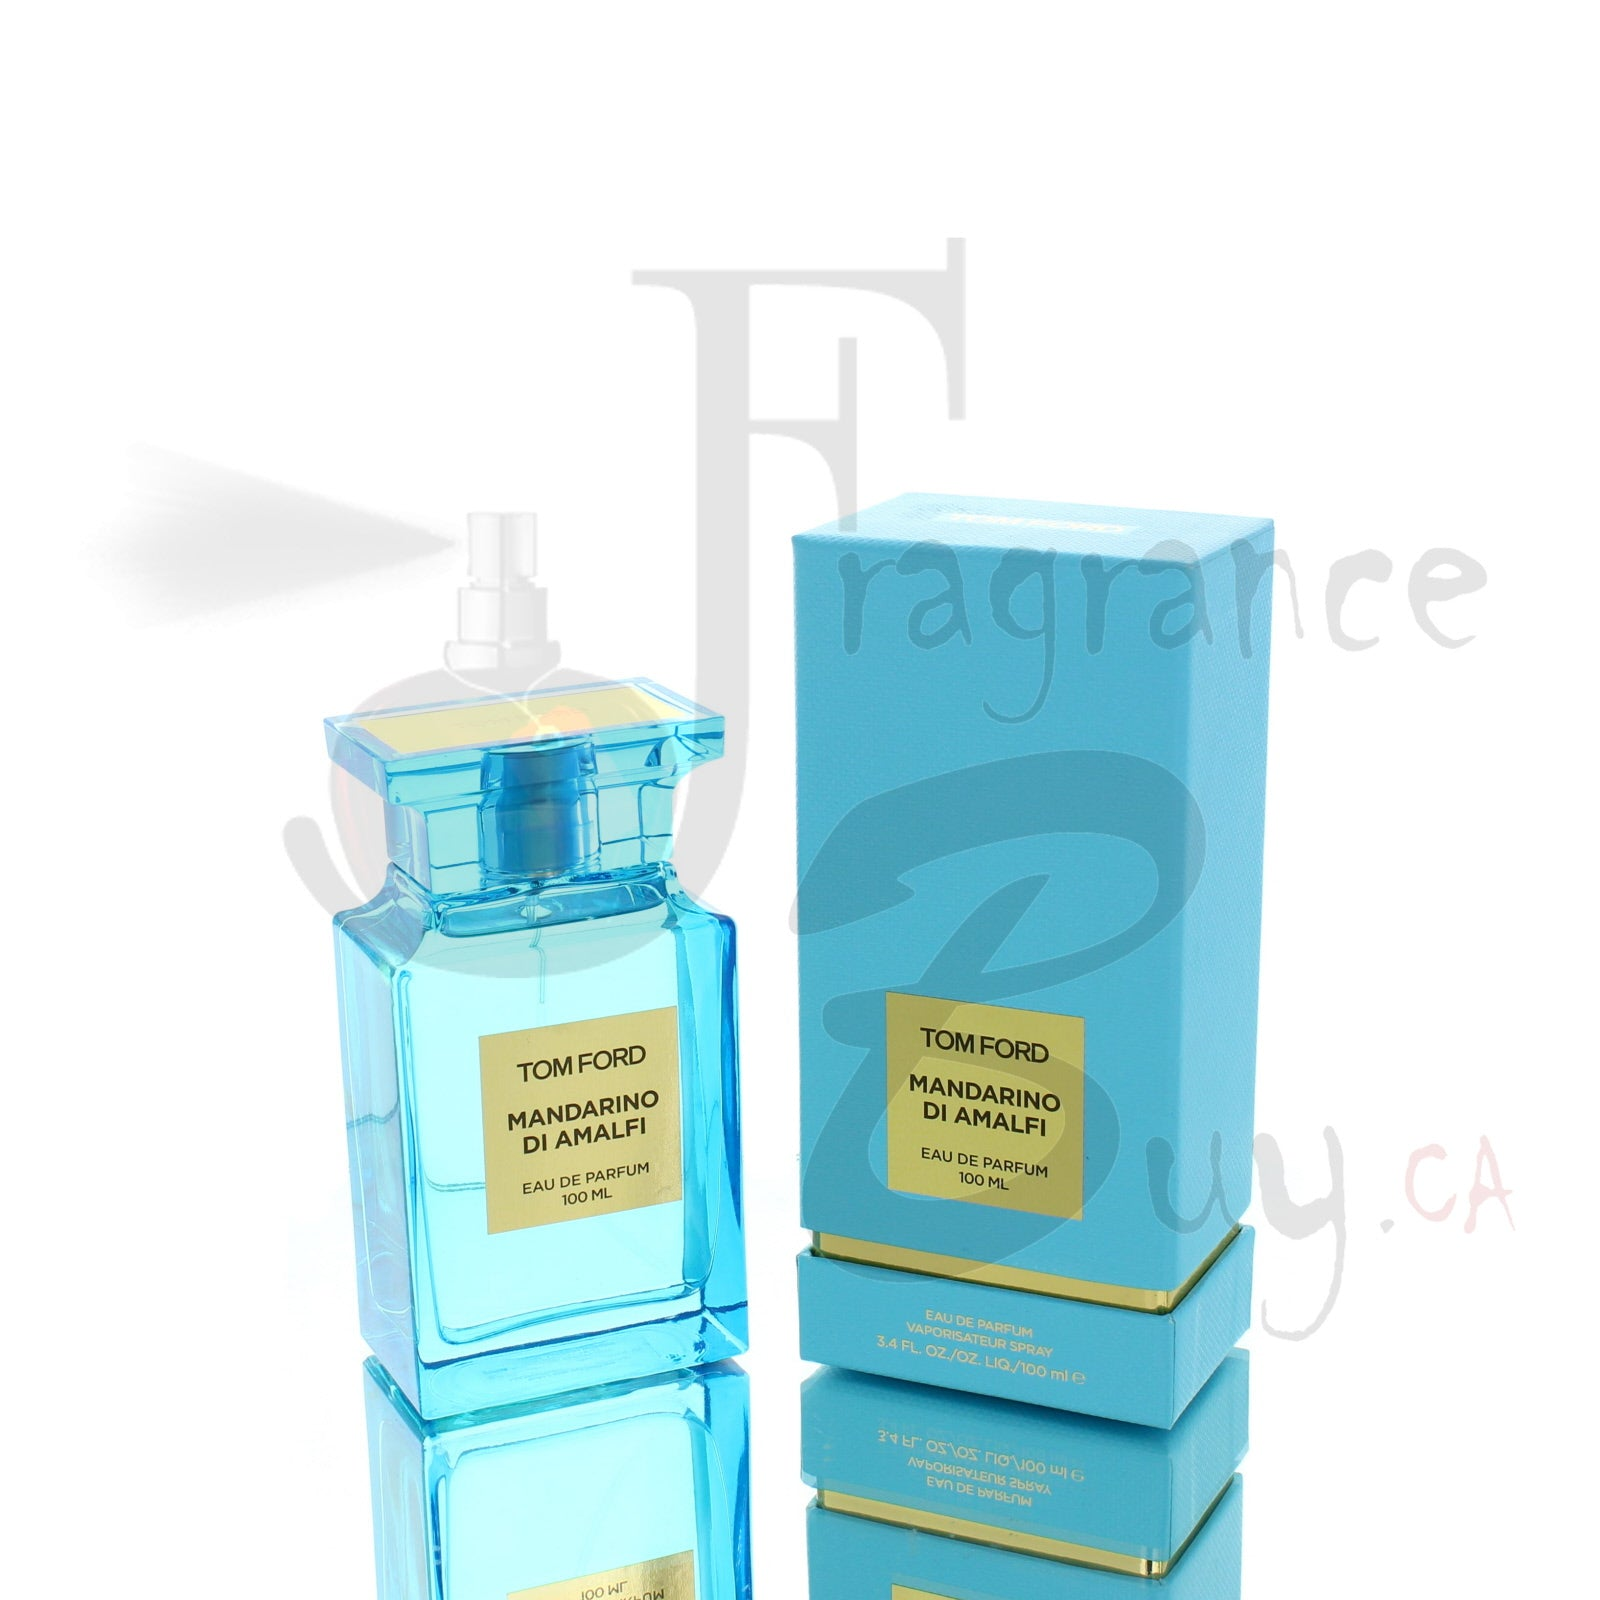 Tom Ford Mandarino Di Amalfi For Man/Woman